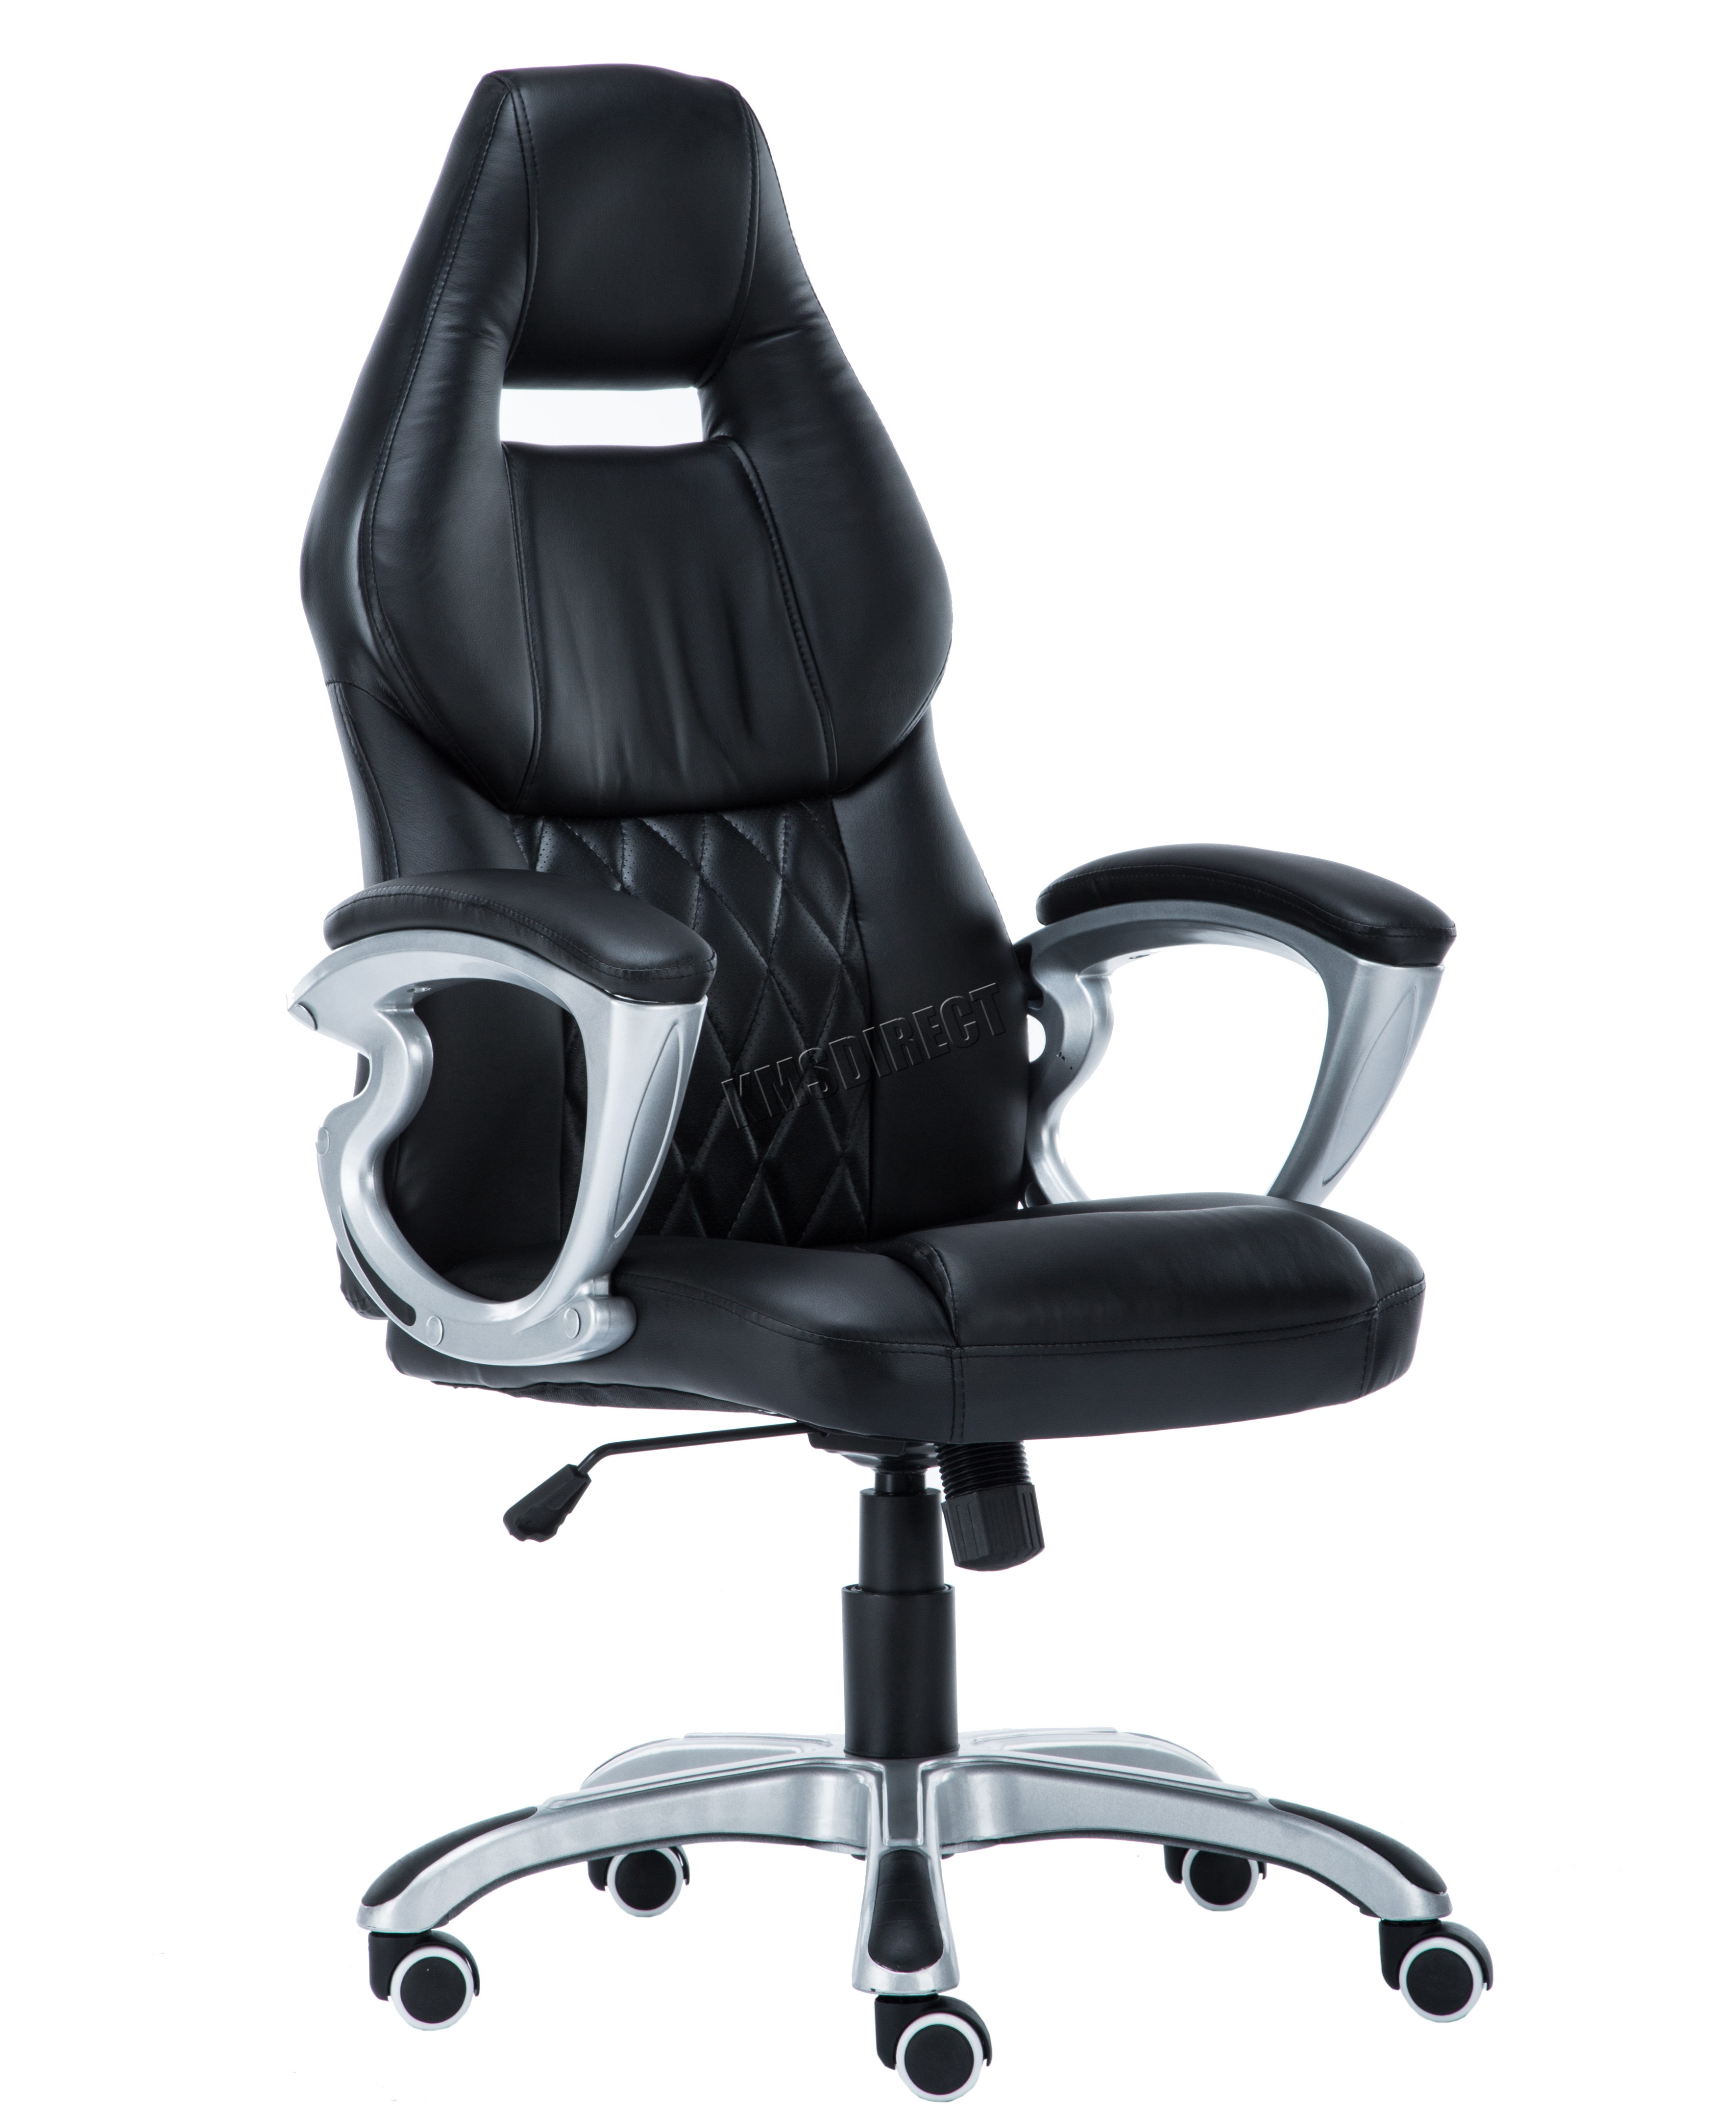 desk chair swivel no wheels wooden frames for upholstery foxhunter computer executive office pu leather